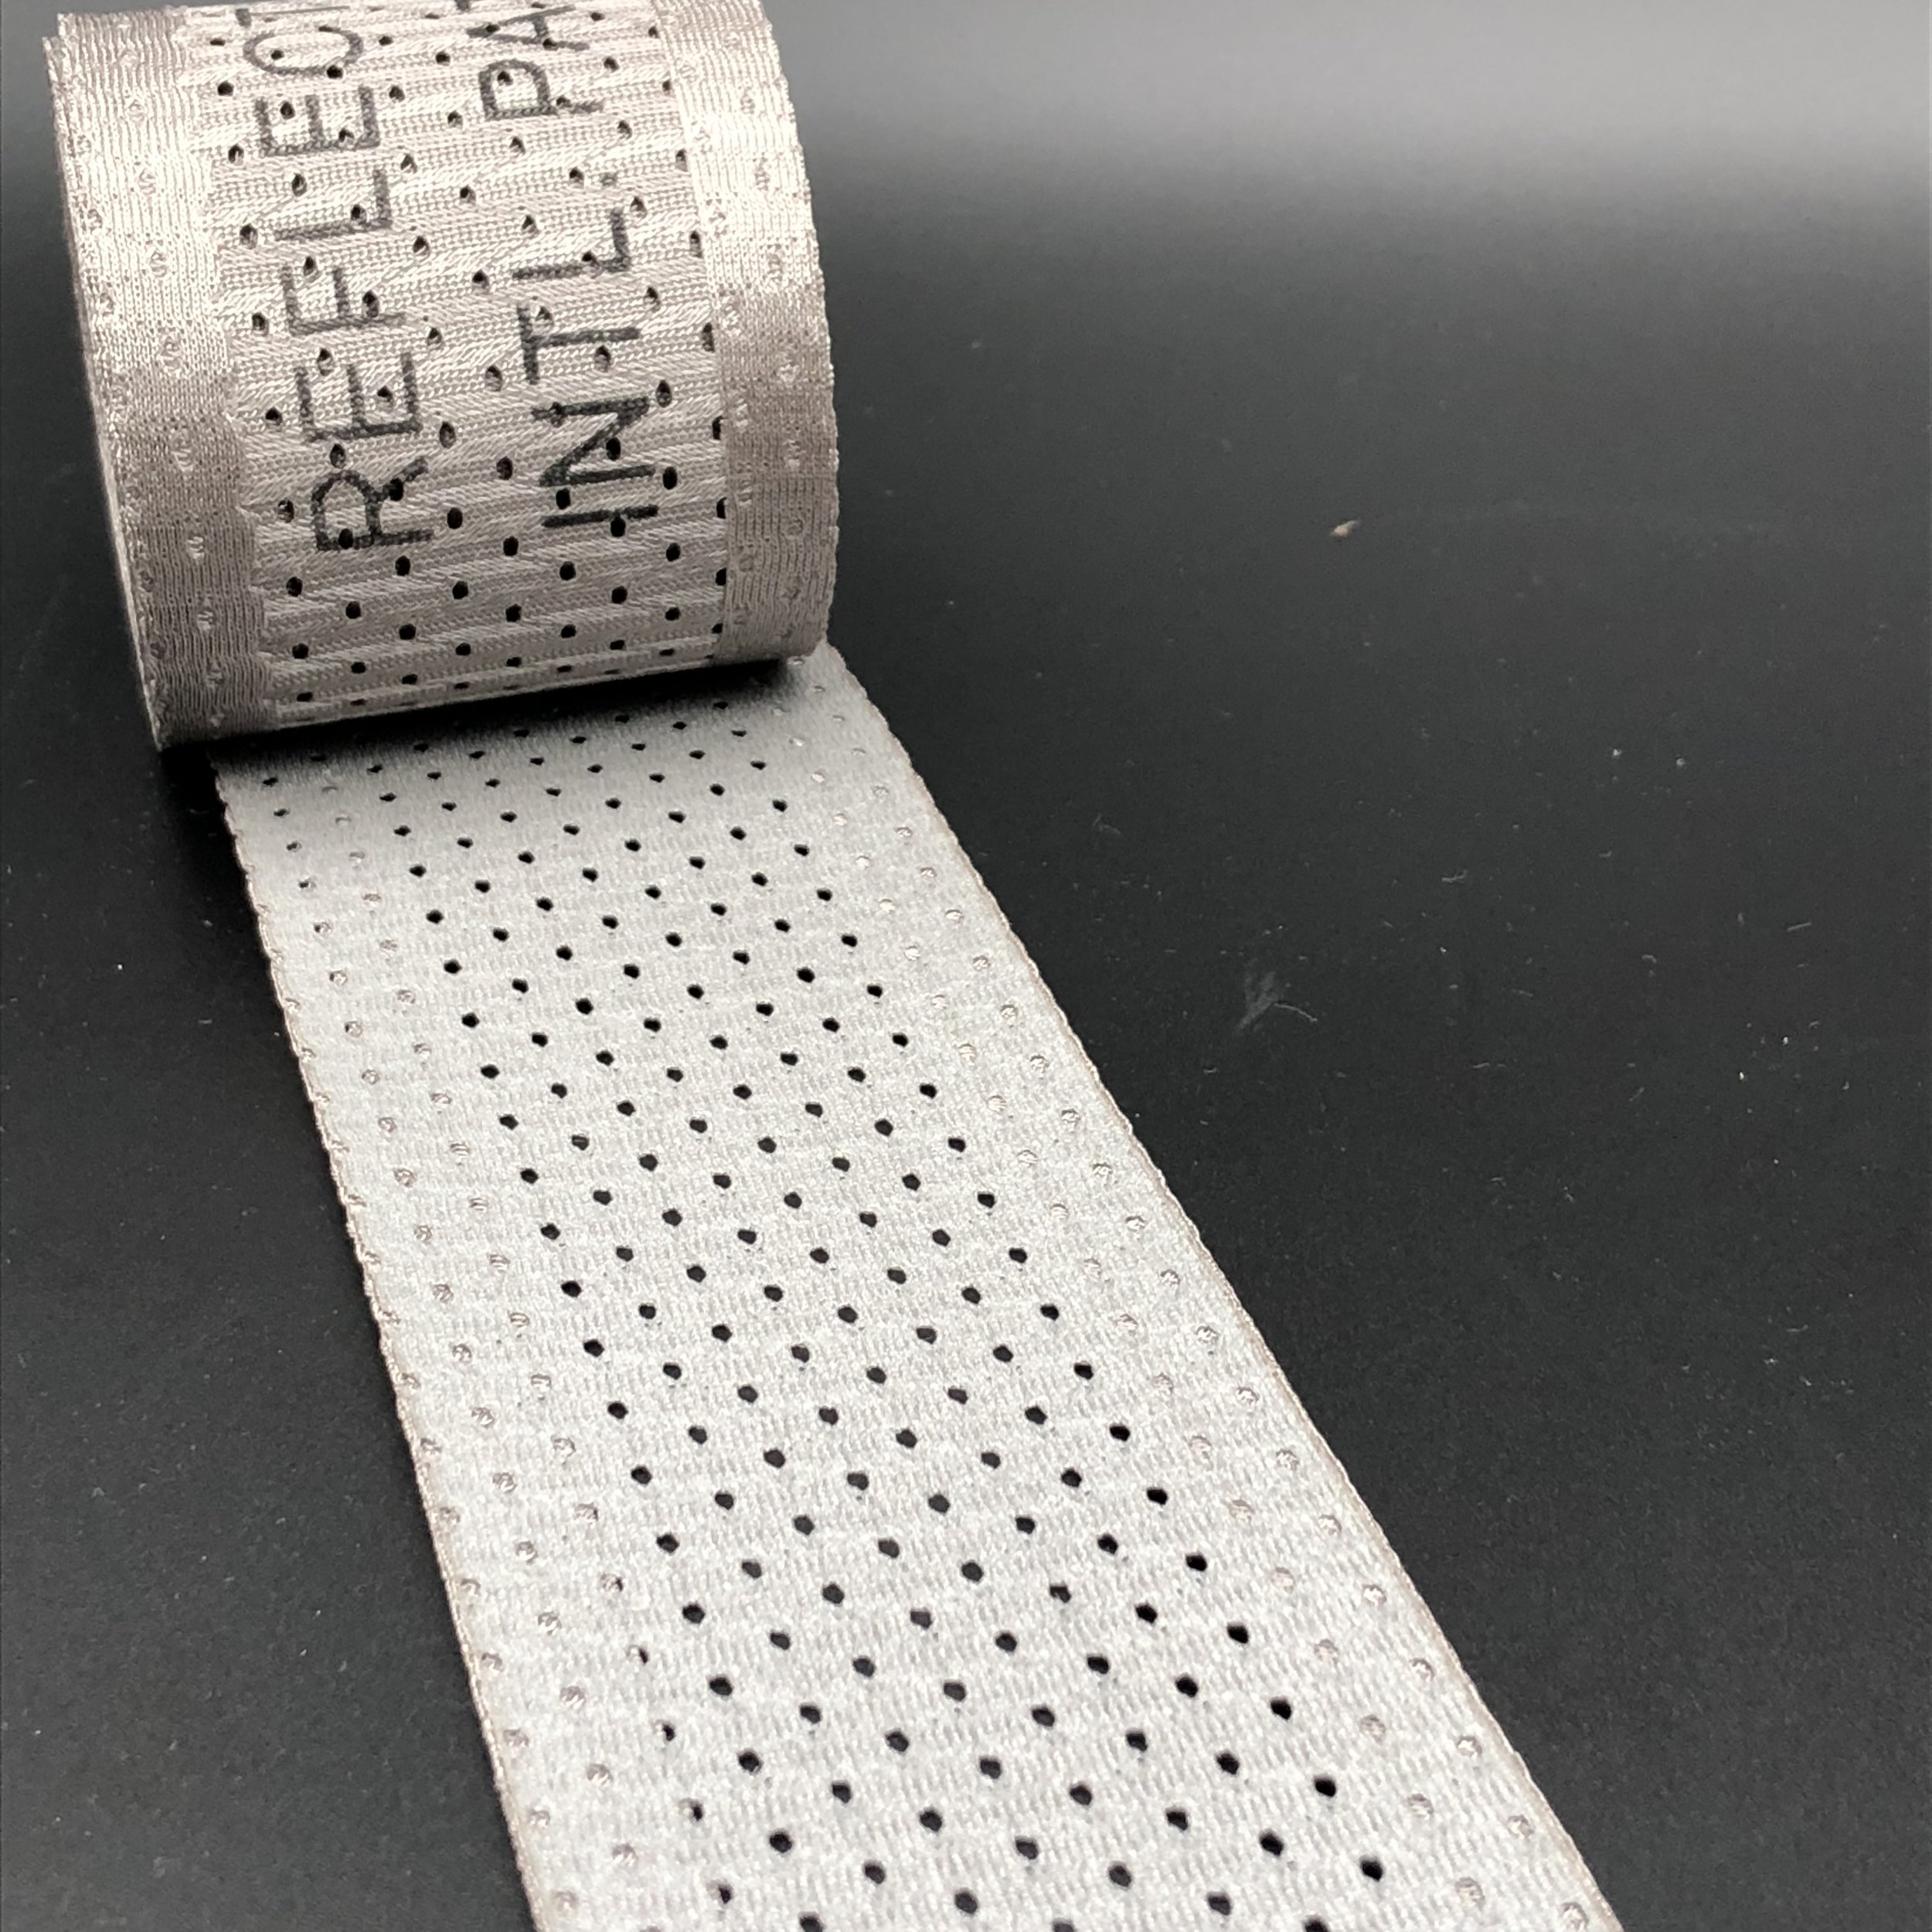 Perforated PF Series:  With an Australian patent filed, this perforation is especially popular in the Australian market providing a durable and timeless design for the industry